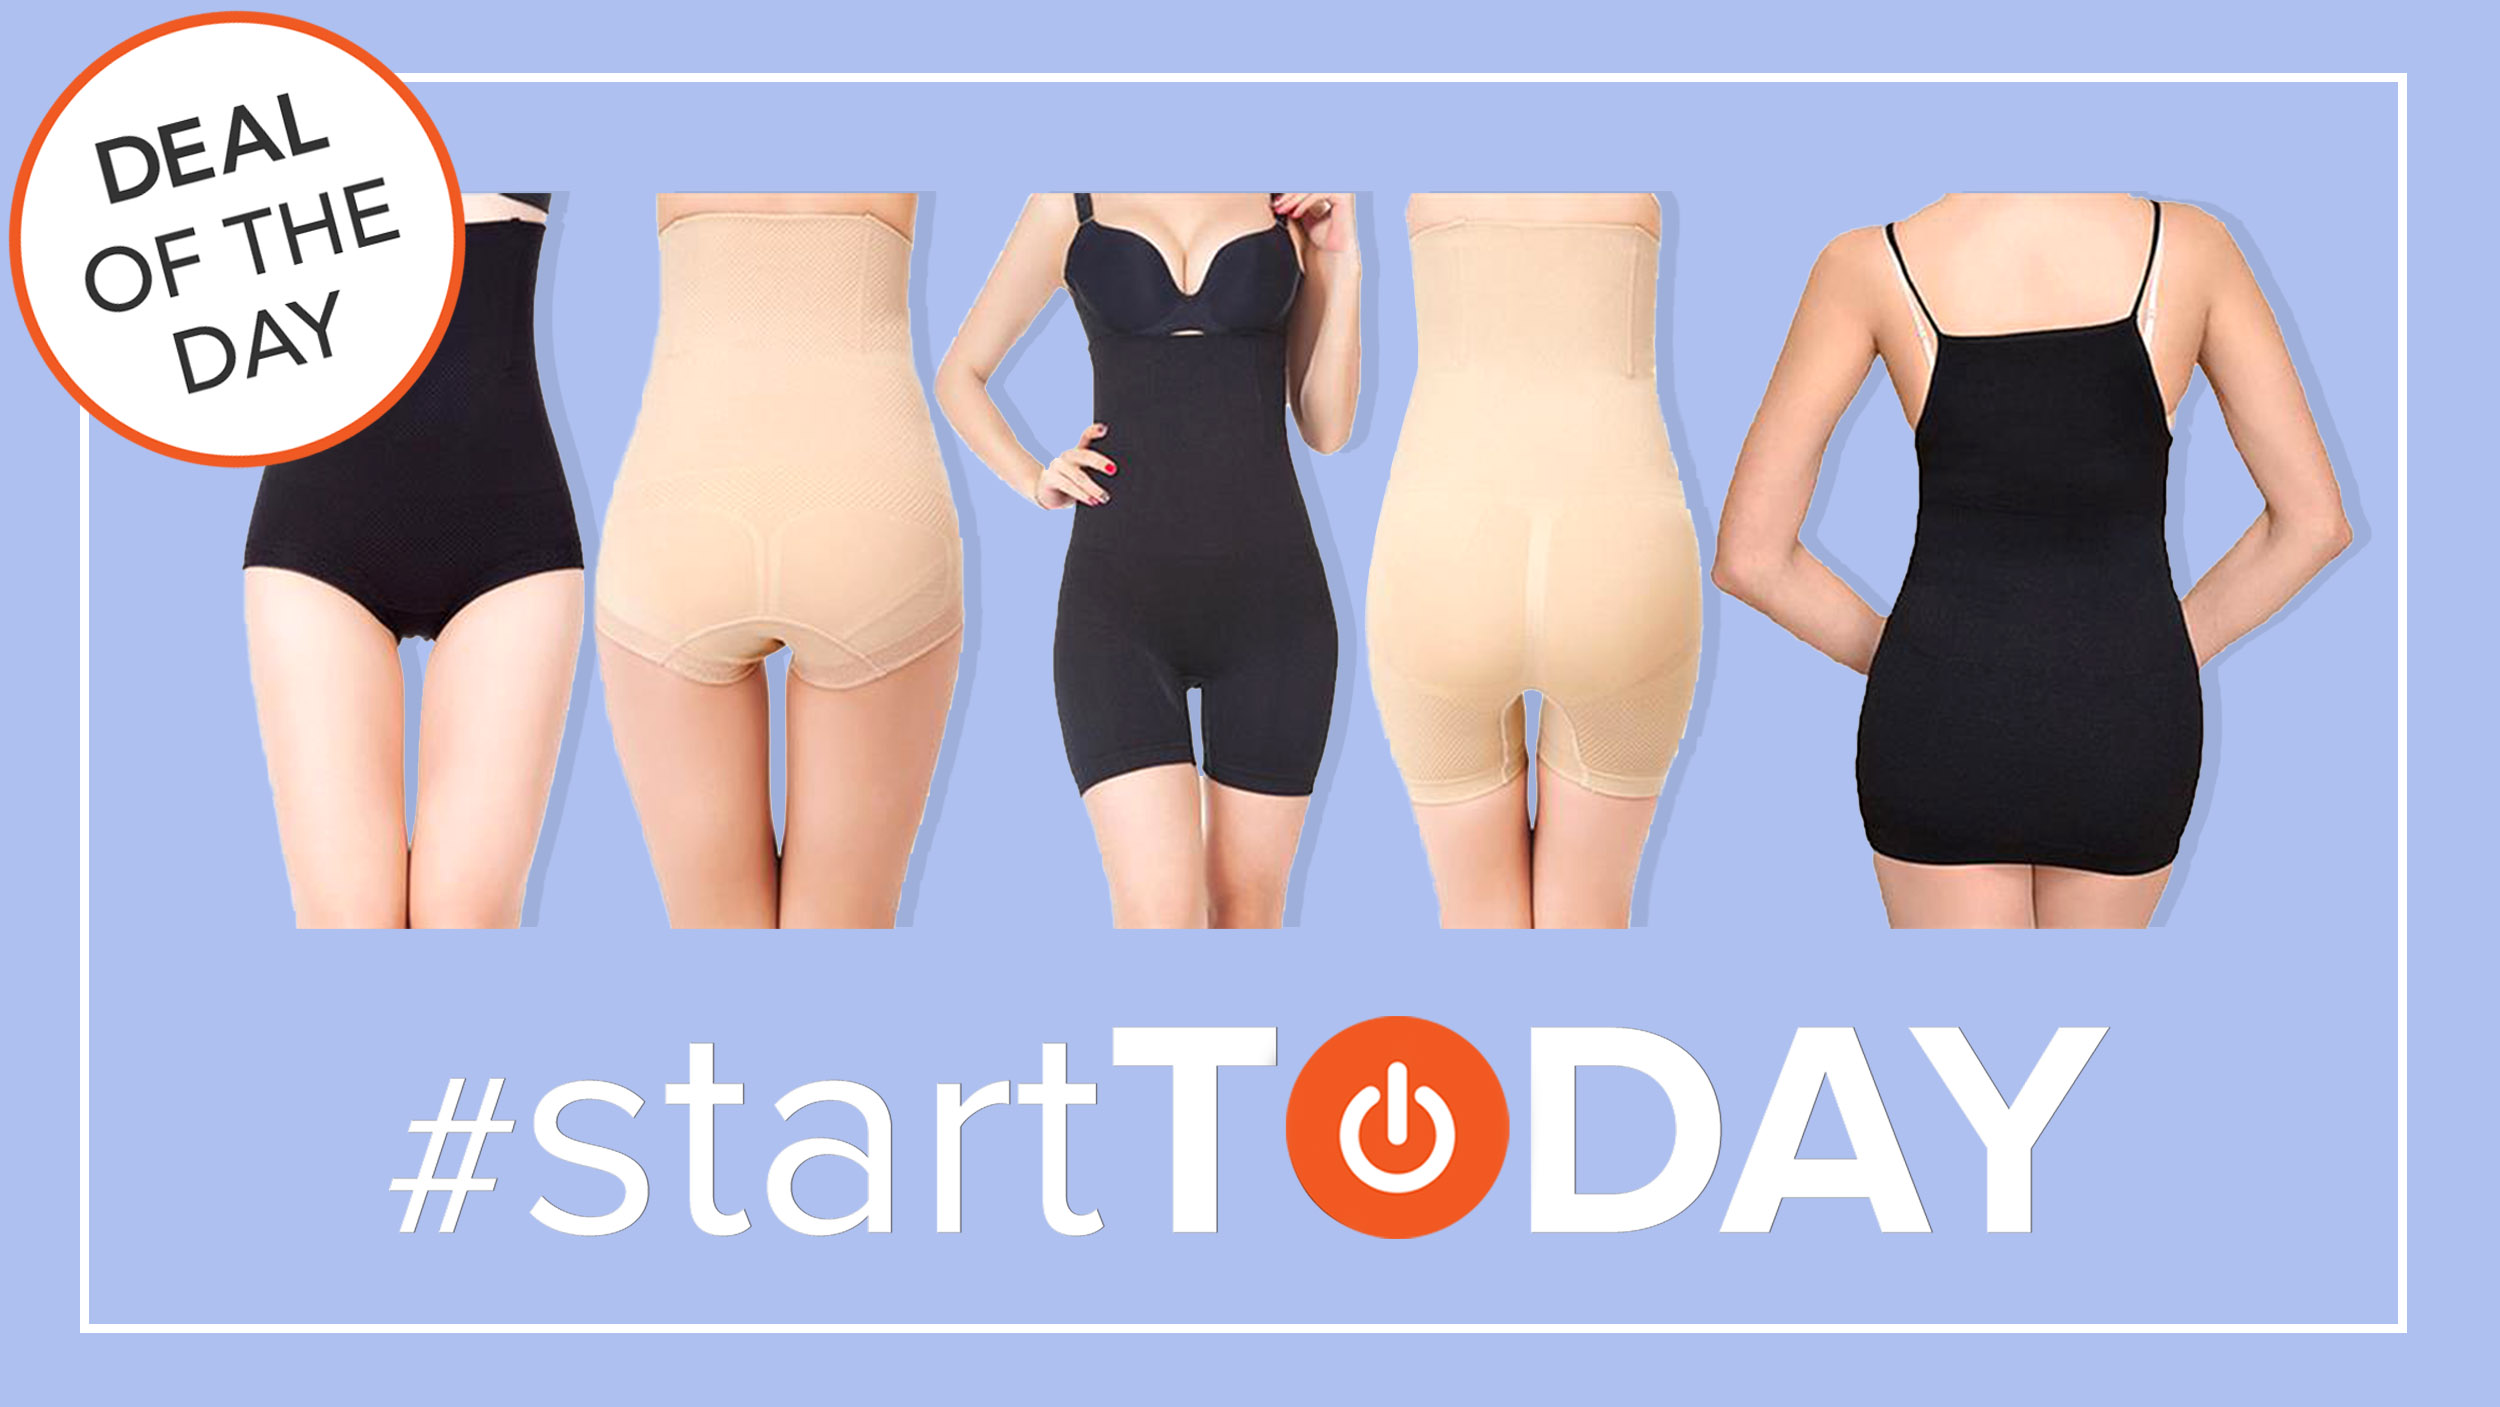 start today deal of the day robert matthew shapewear for 60 percent off